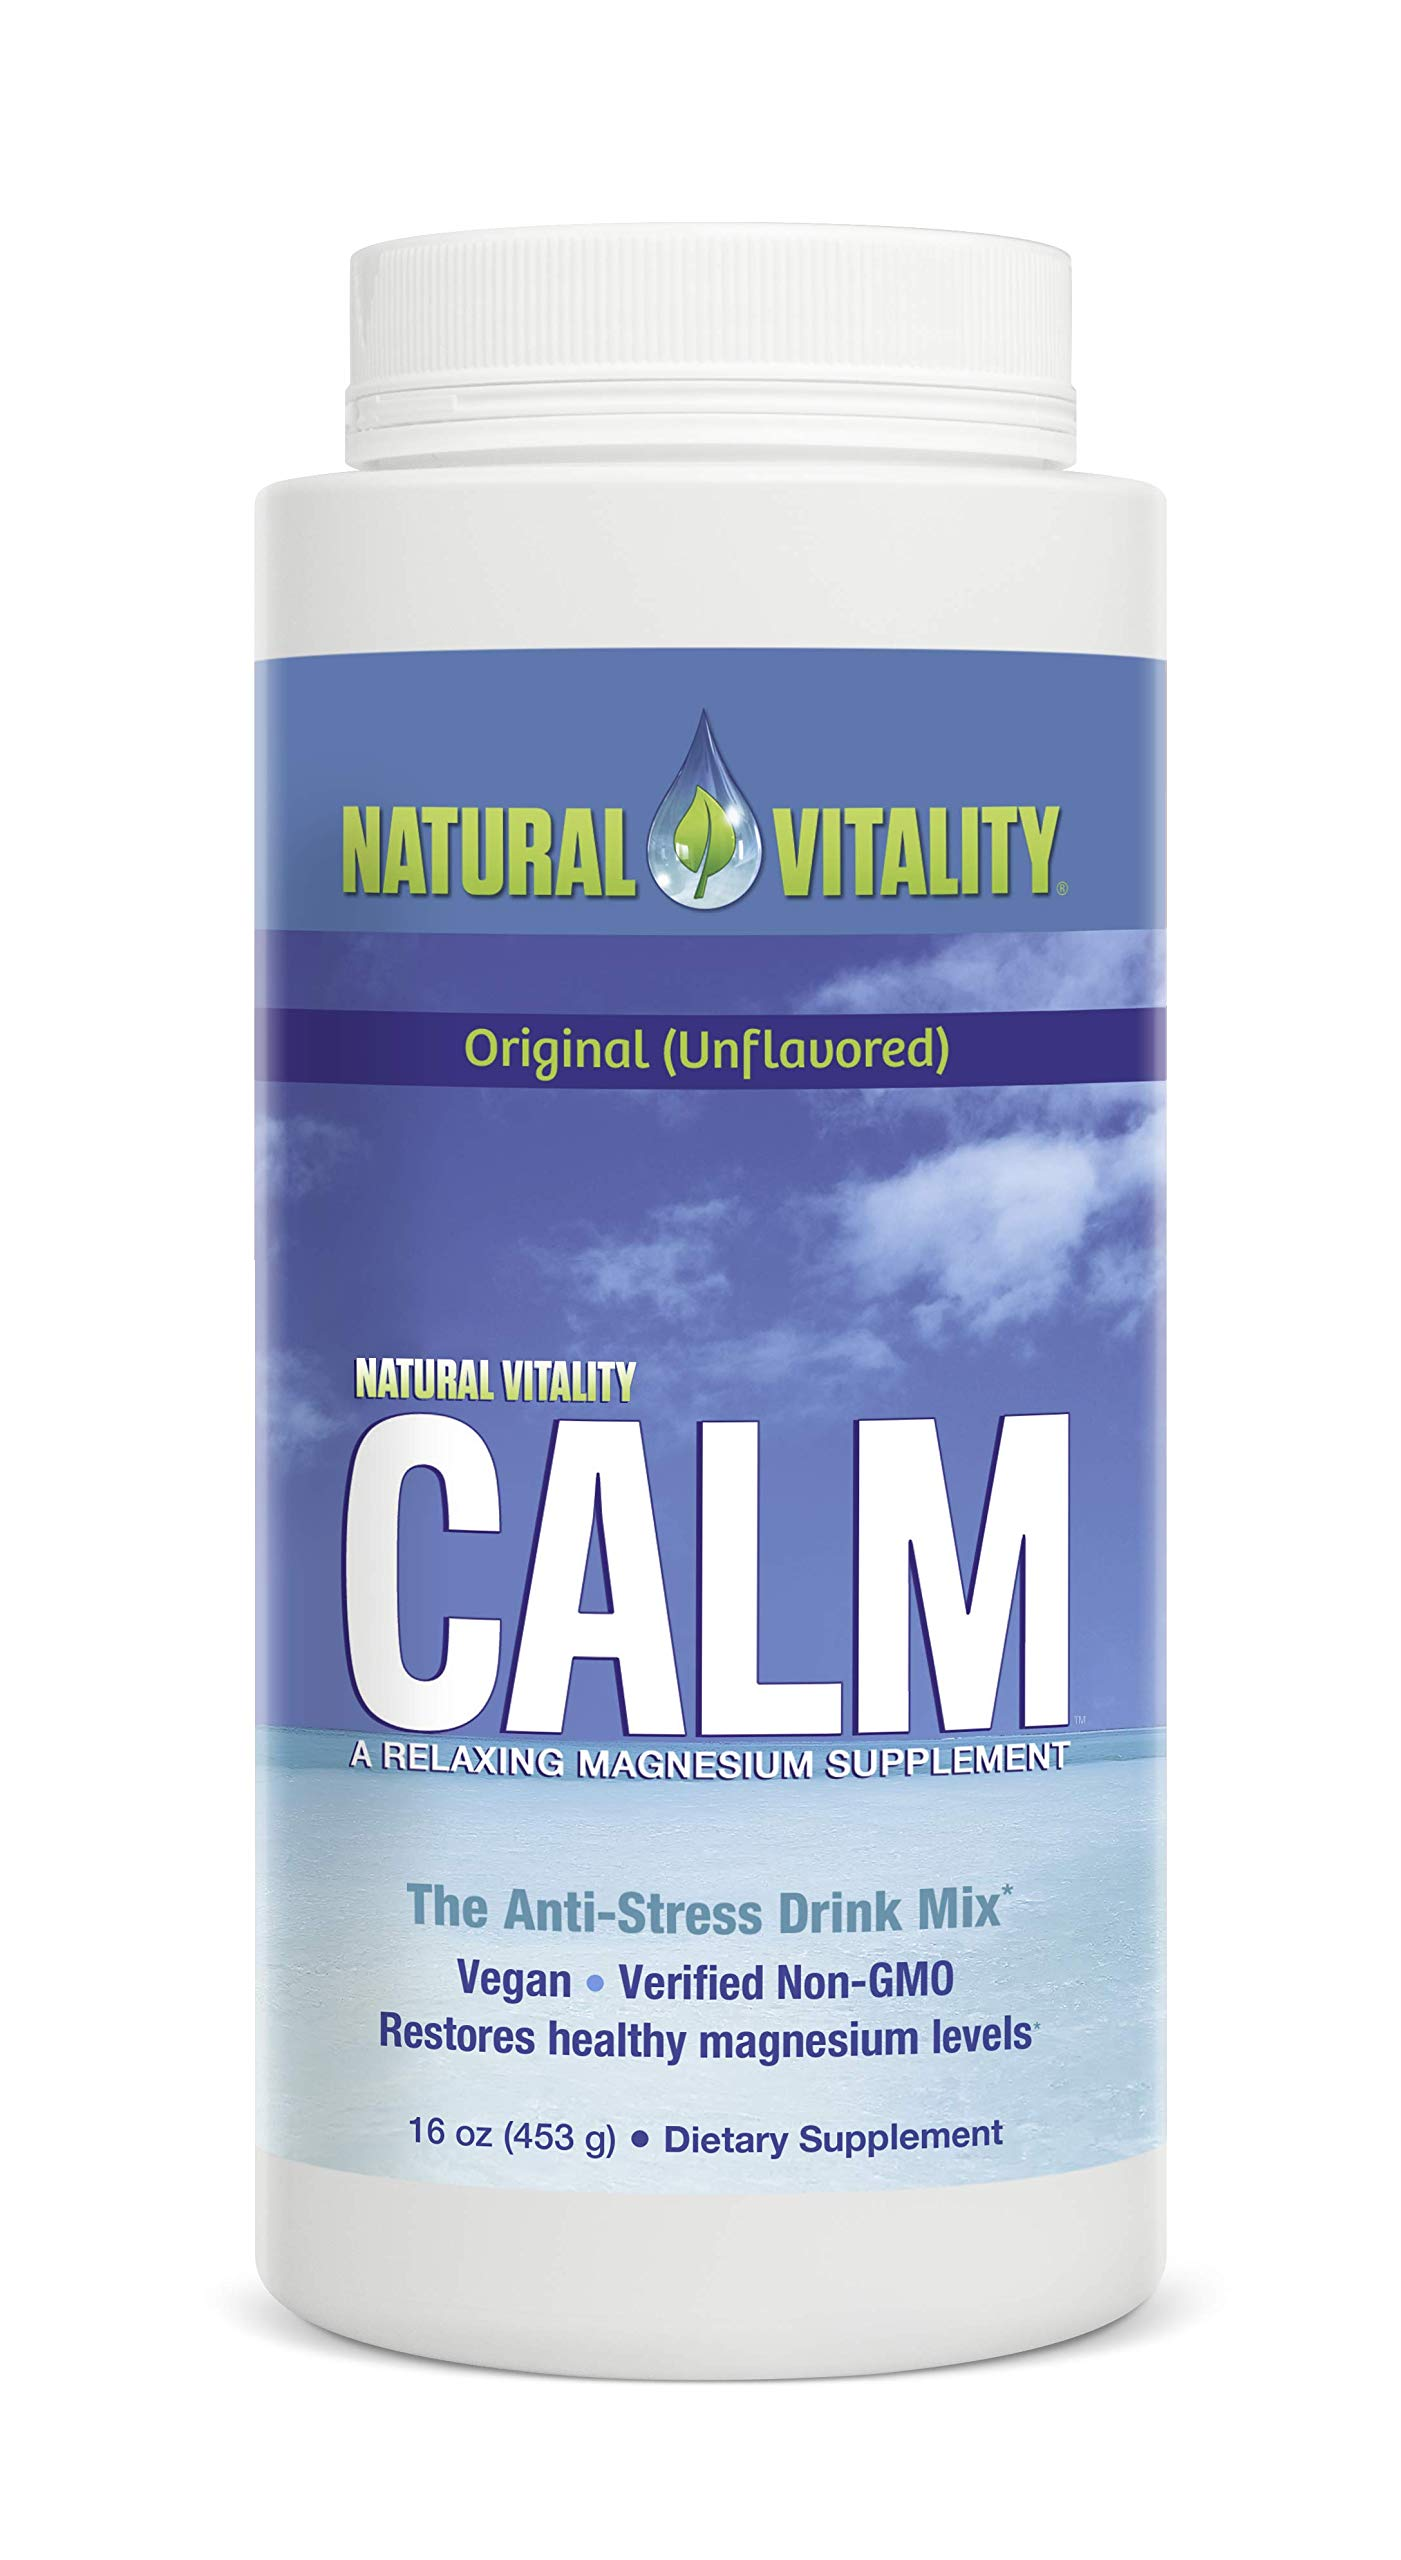 Natural Vitality Calm, The Anti-Stress Drink Mix, Magnesium Supplement Powder, Original Unflavored - 16 ounce by Natural Vitality